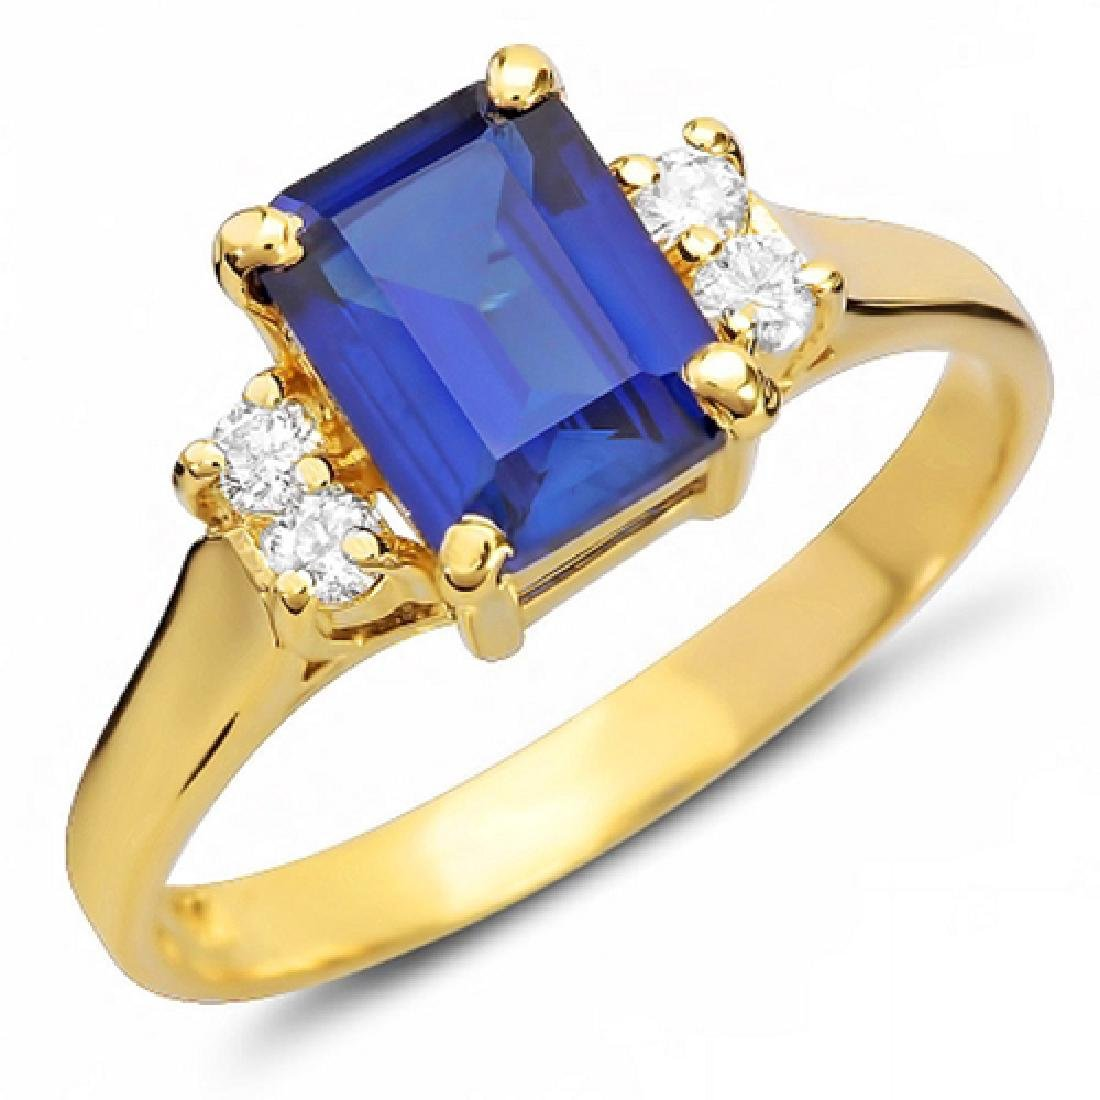 1.65 Carat Natural Sapphire 14K Solid Yellow Gold